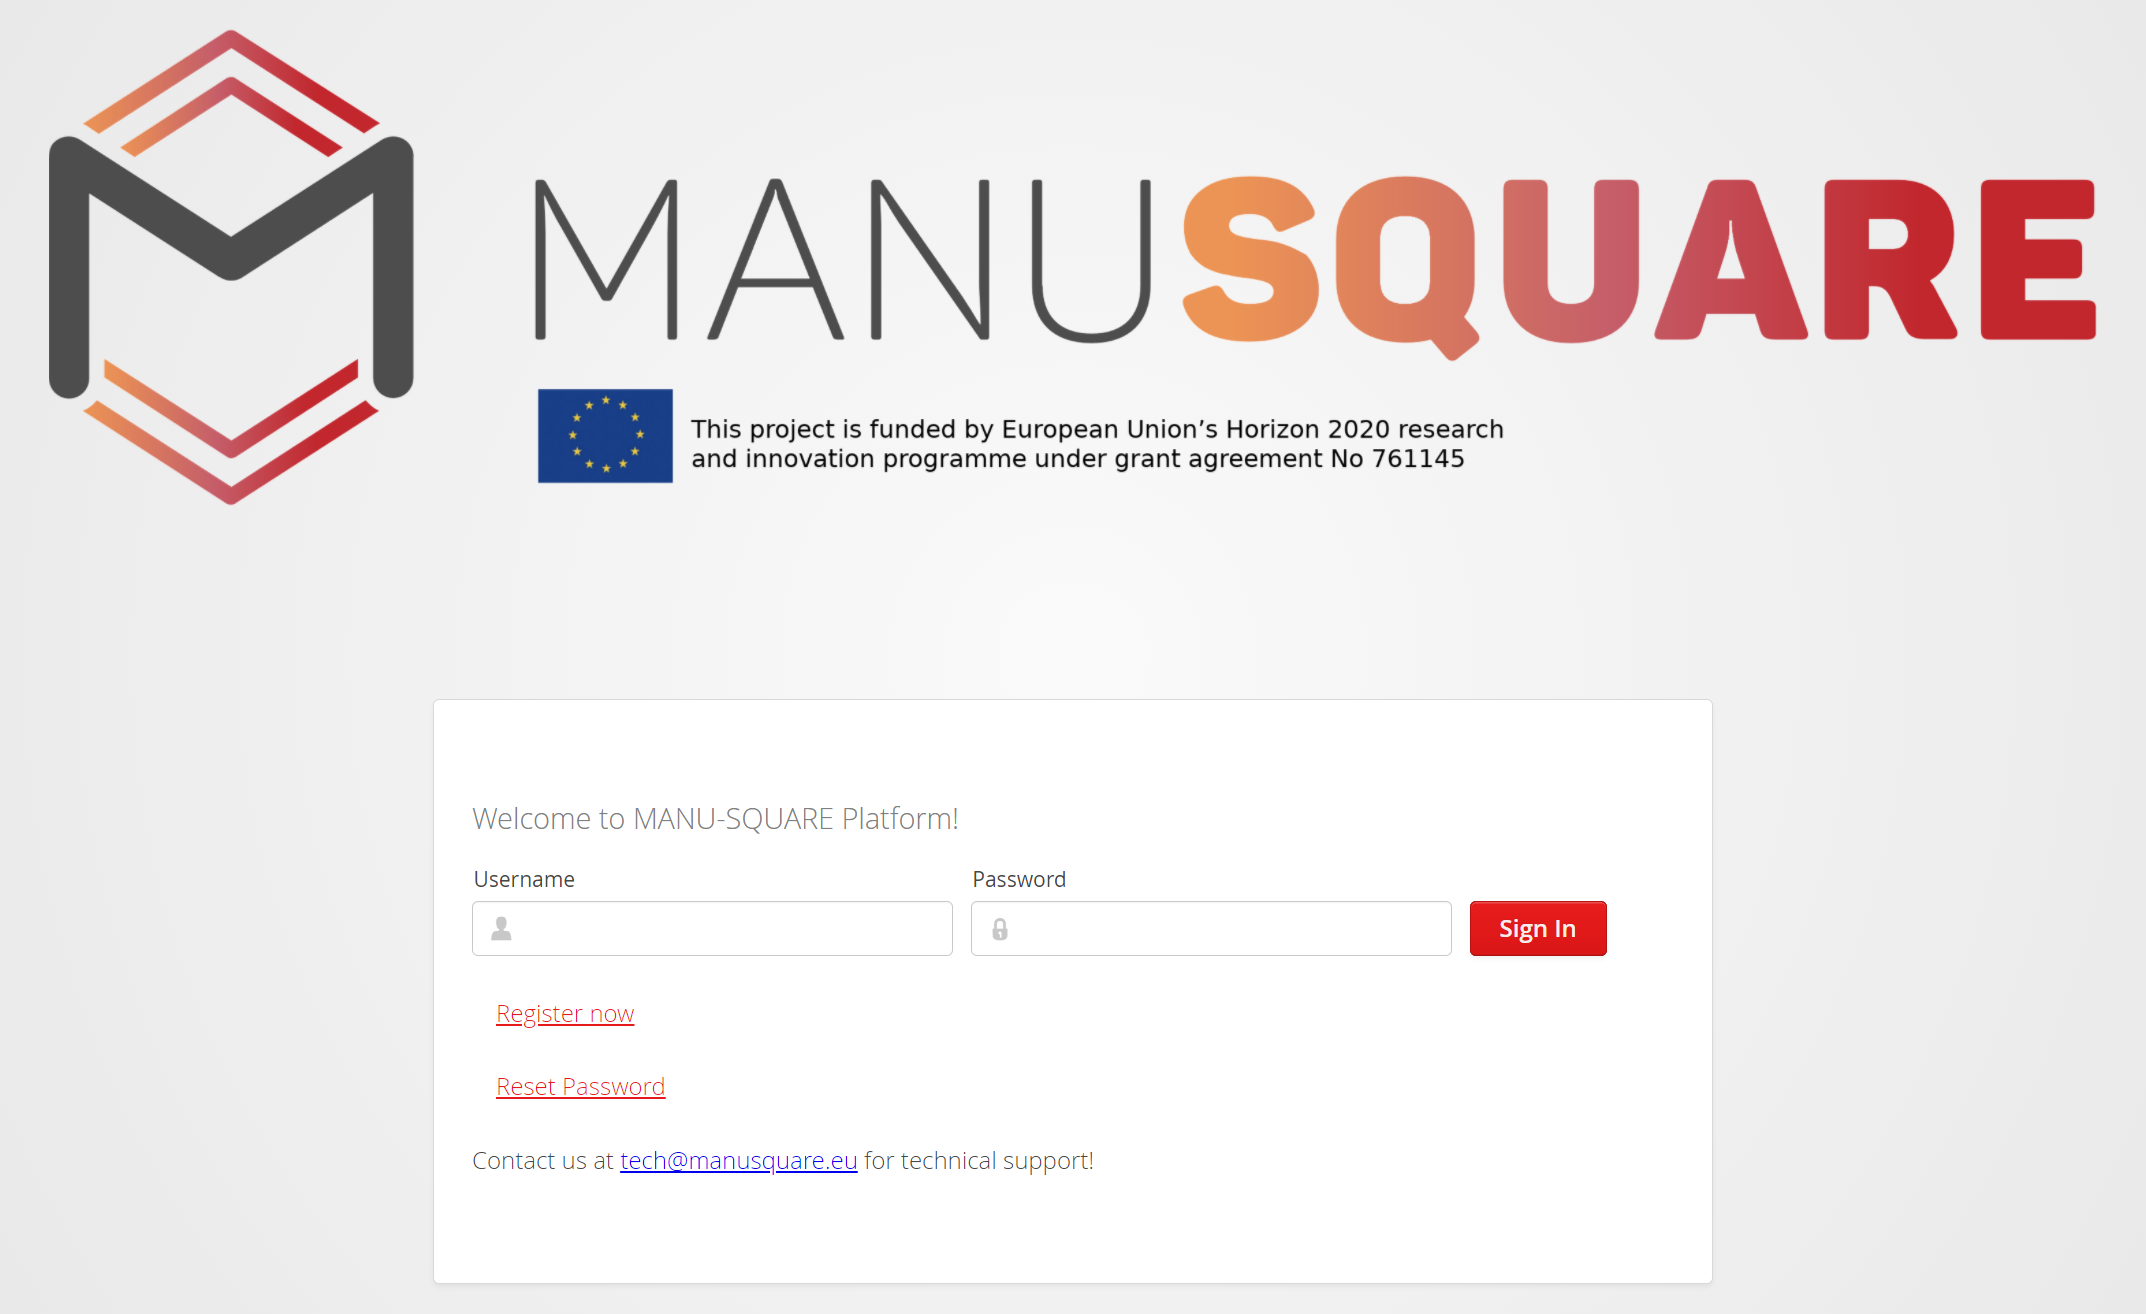 MANU-SQUARE platform is launched and open for users. Register to the platform today!